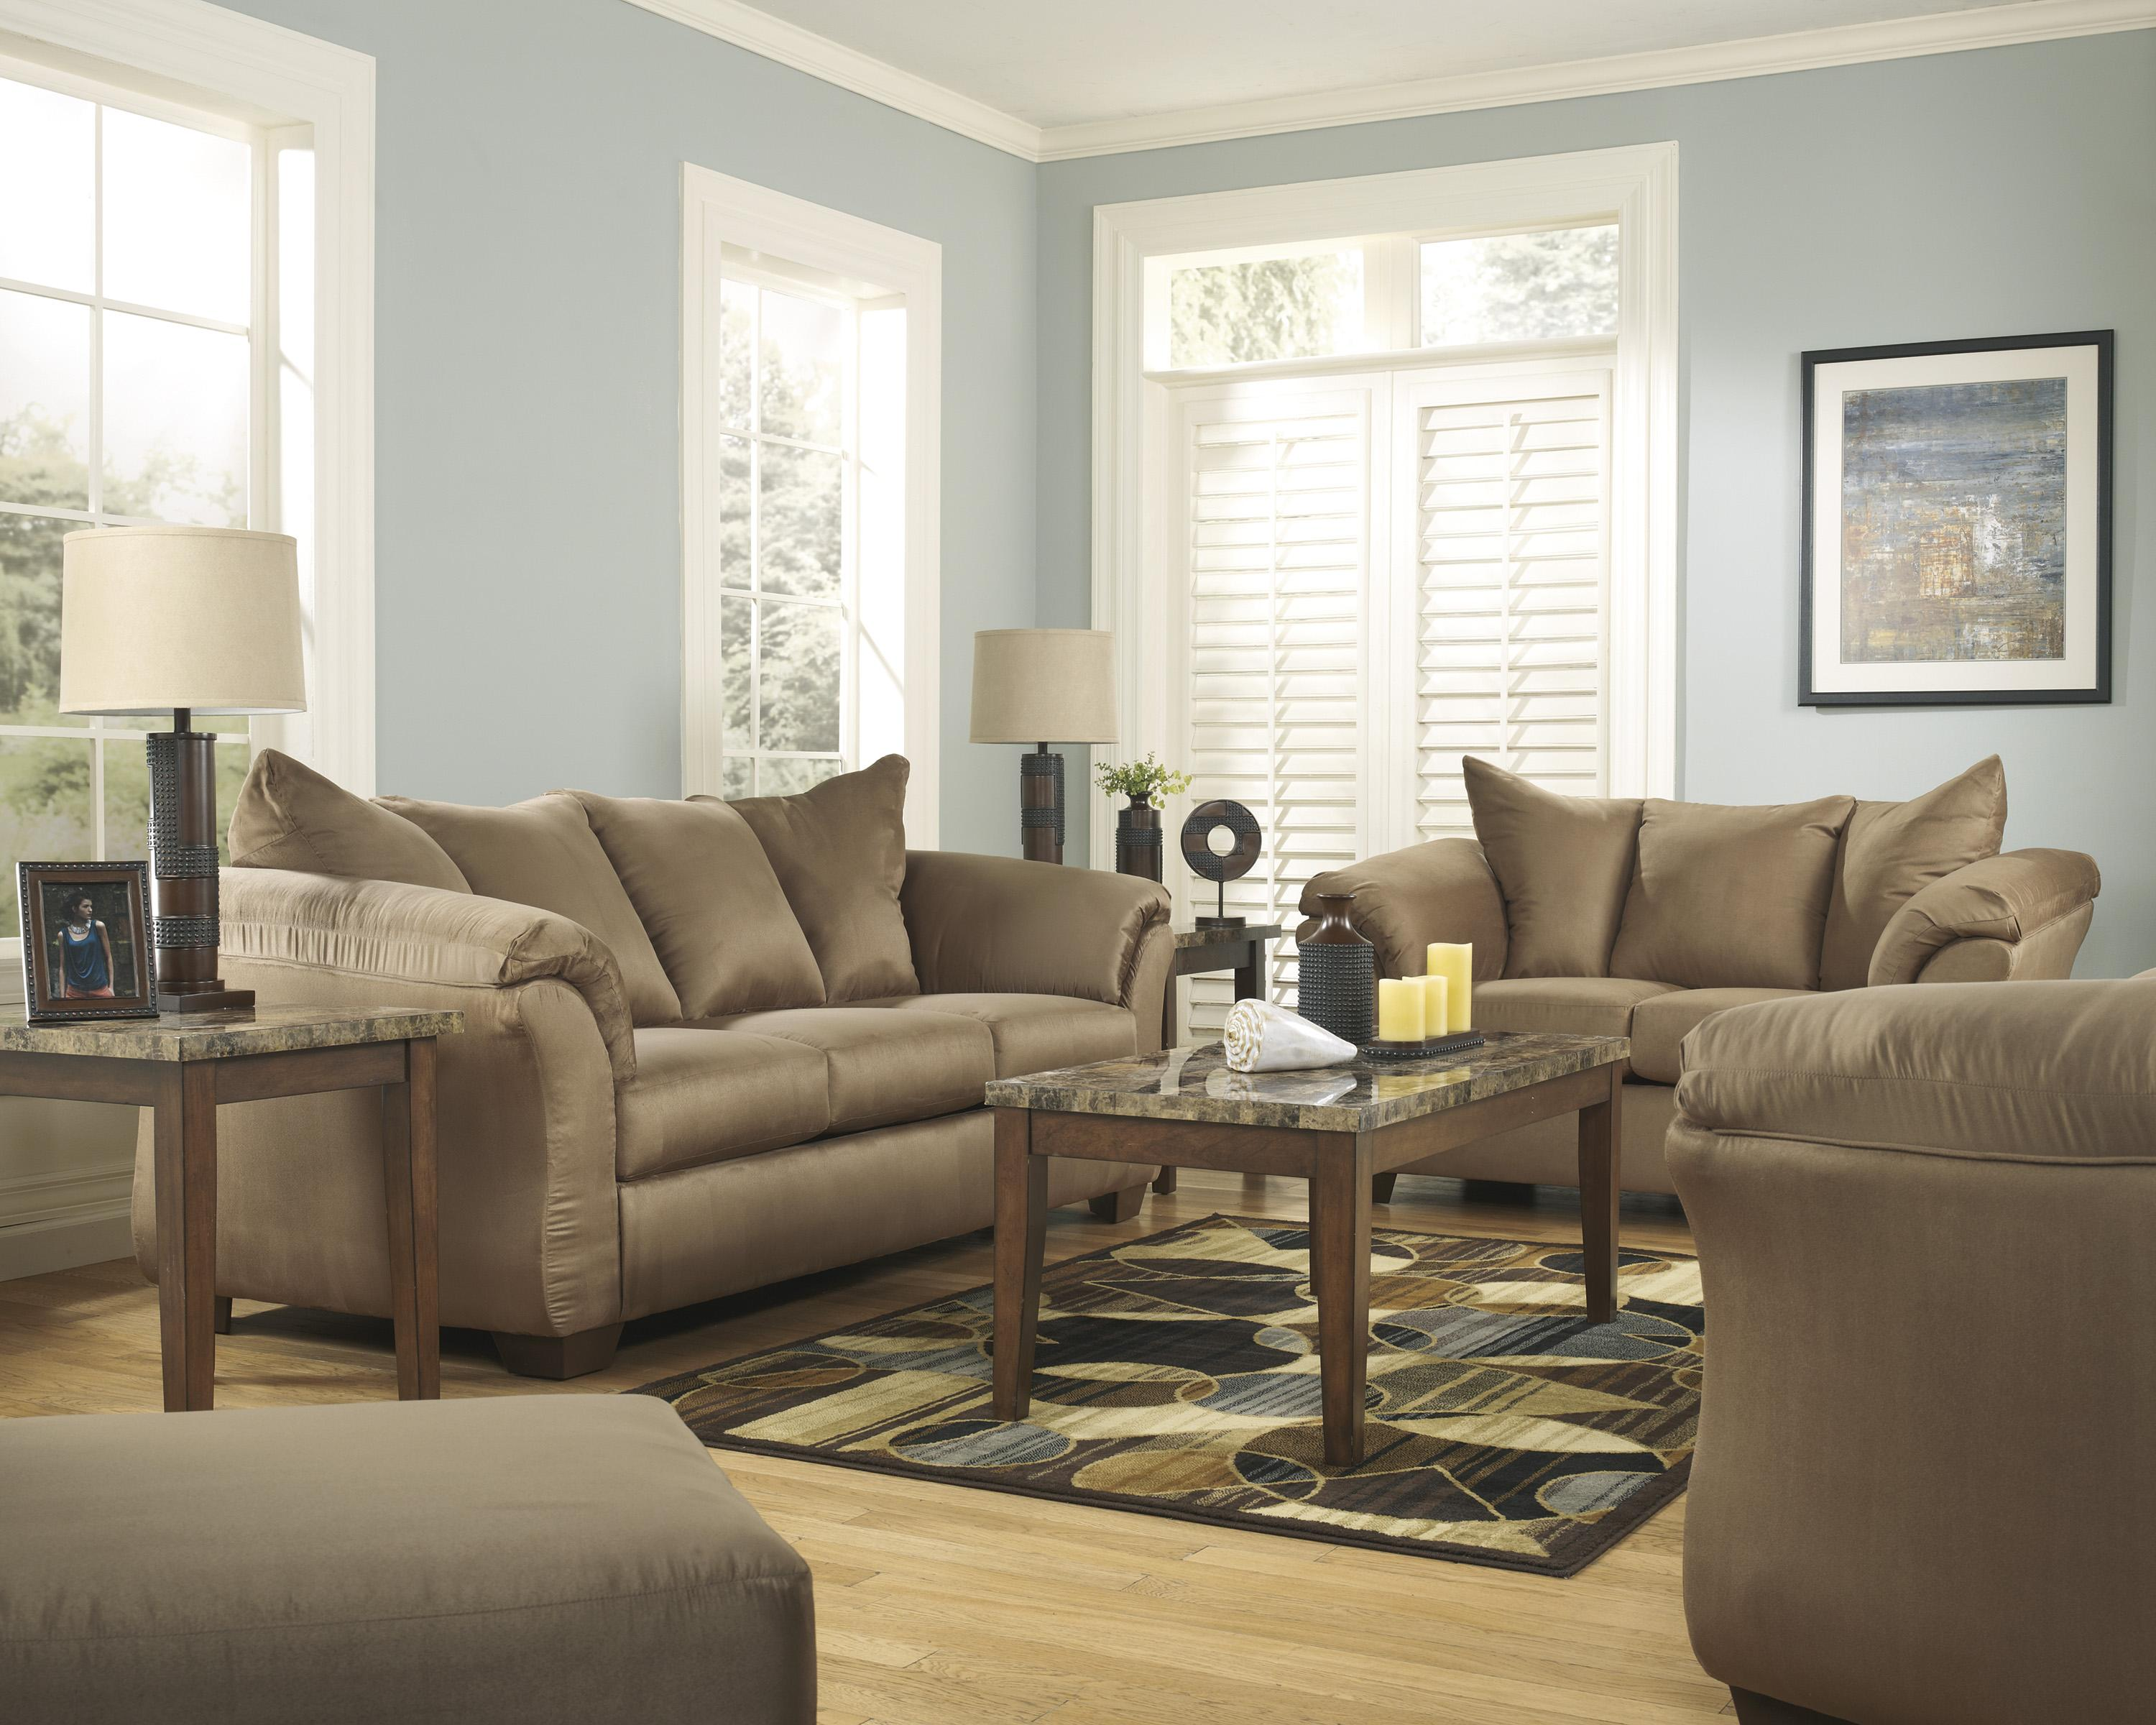 Darcy - Mocha Stationary Living Room Group by Signature Design by Ashley at Sparks HomeStore